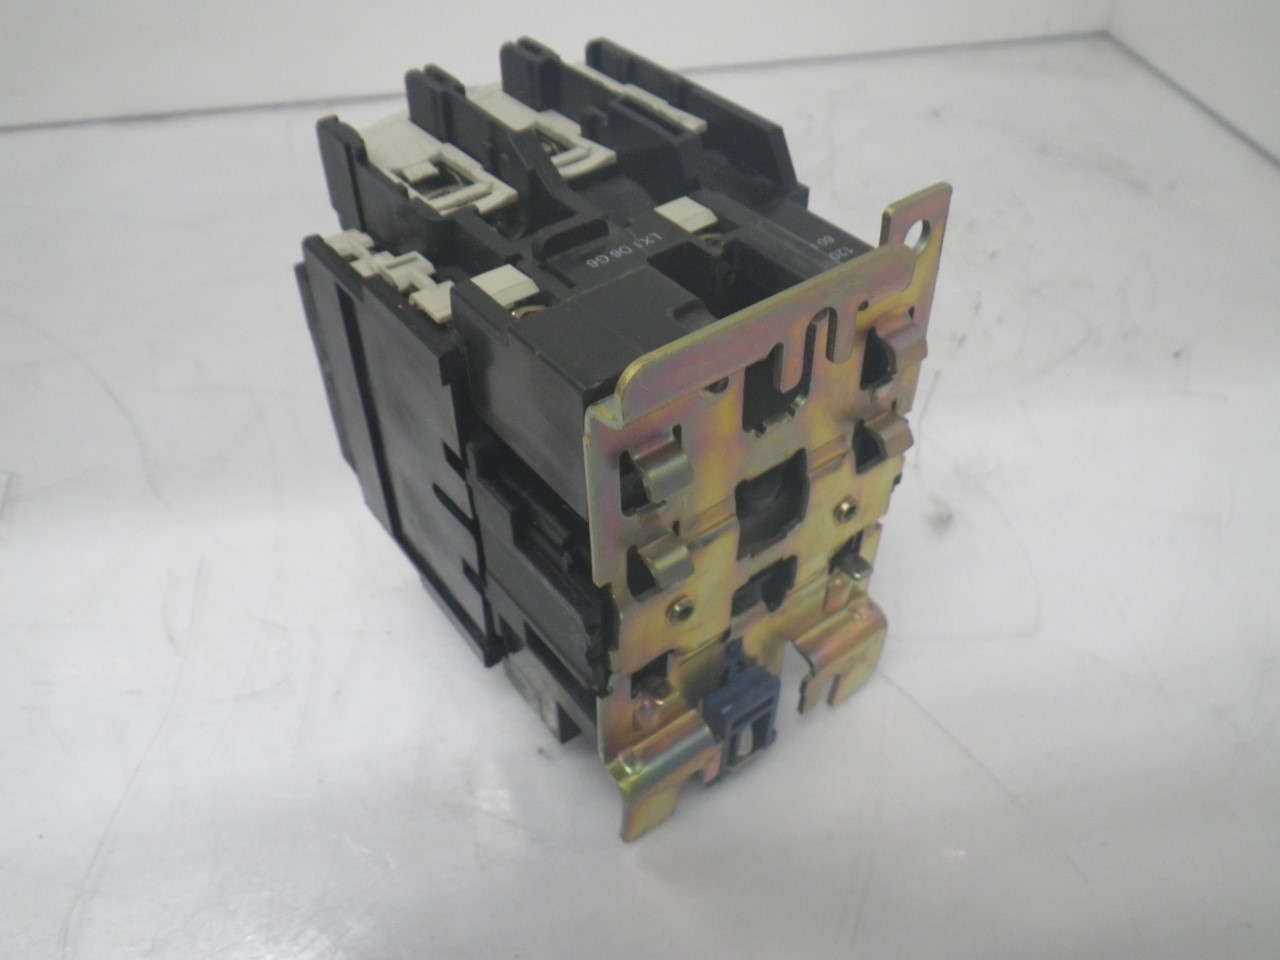 IMGP8343125A, 600V (6)LC1D8011 Telemecanique Contactor Magnetic Power Relay 125a, 600v (Used Tested)